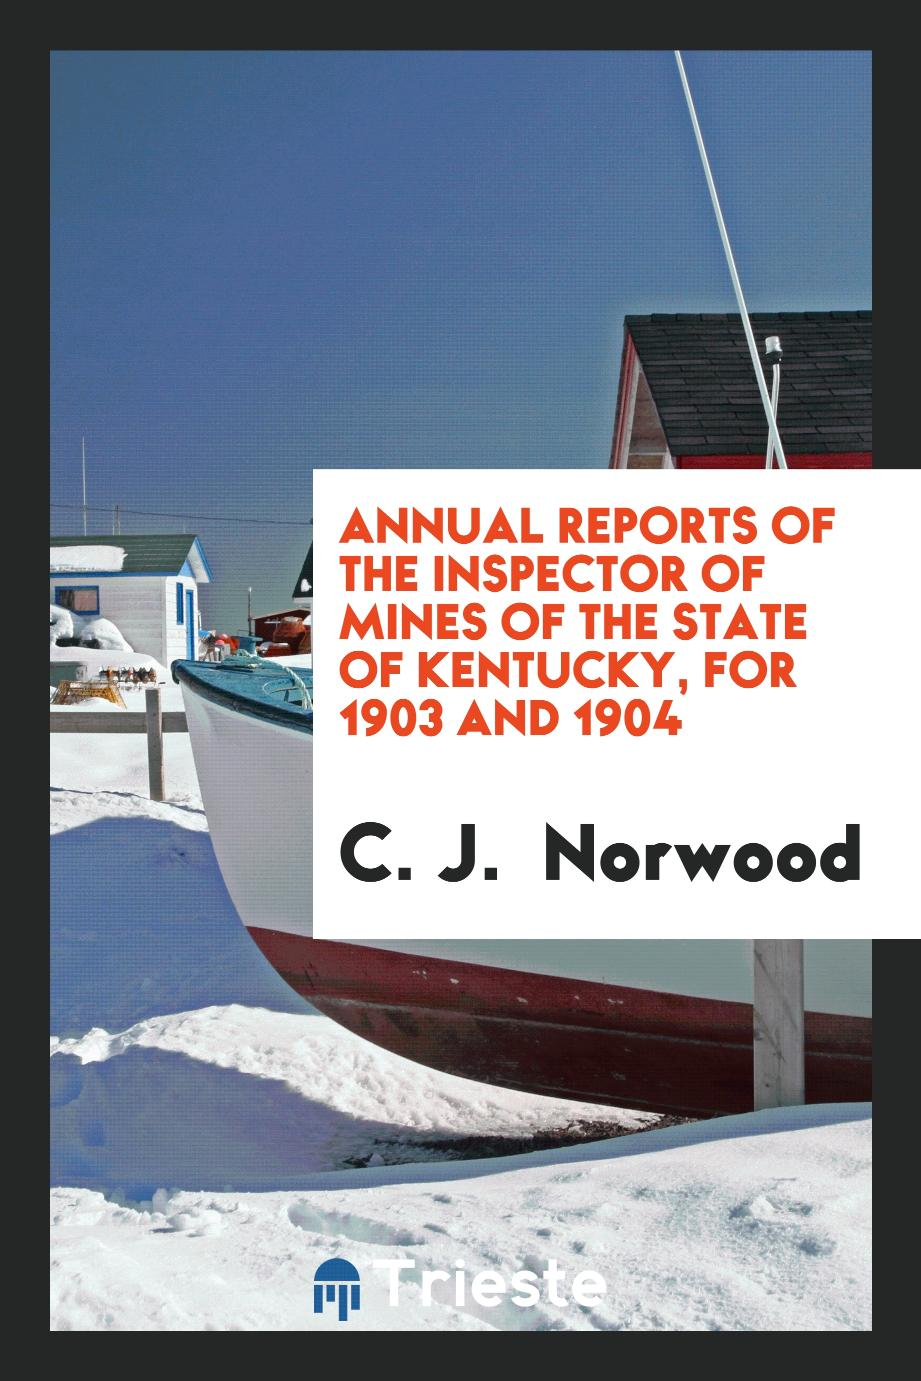 Annual Reports of the Inspector of Mines of the State of Kentucky, for 1903 and 1904